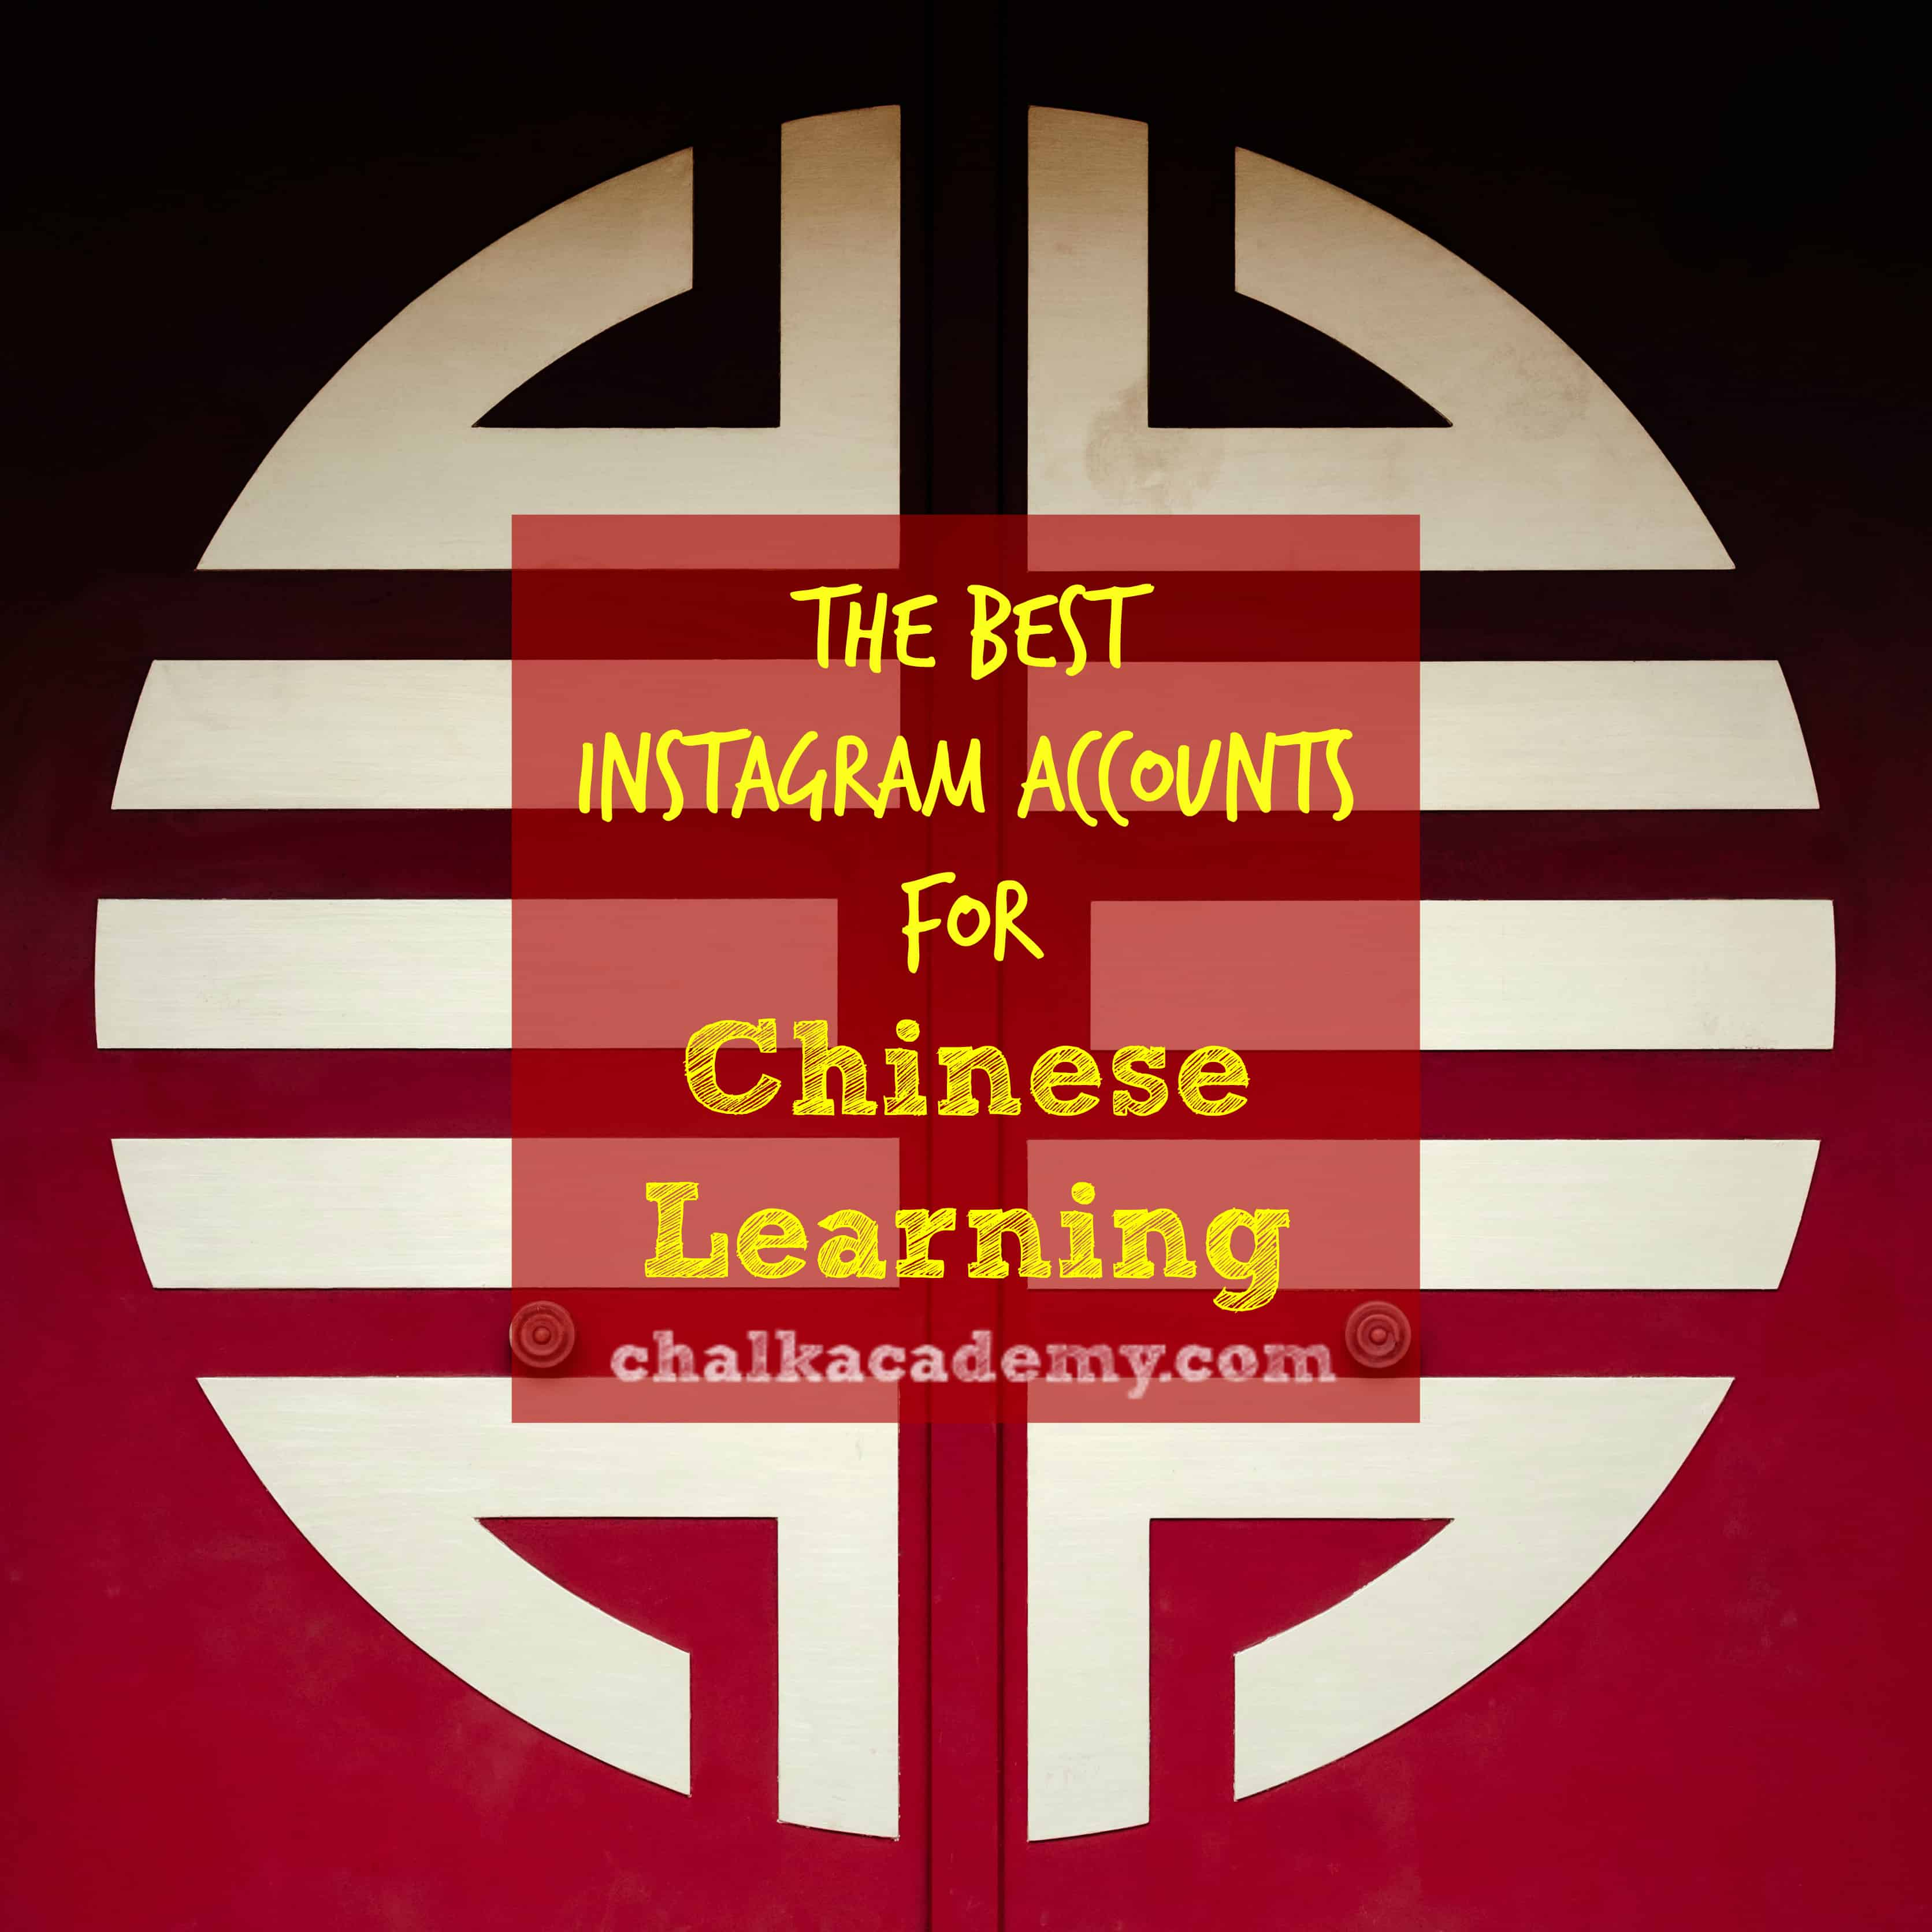 The 7 best instagram accounts for chinese learning chalk academy buycottarizona Choice Image